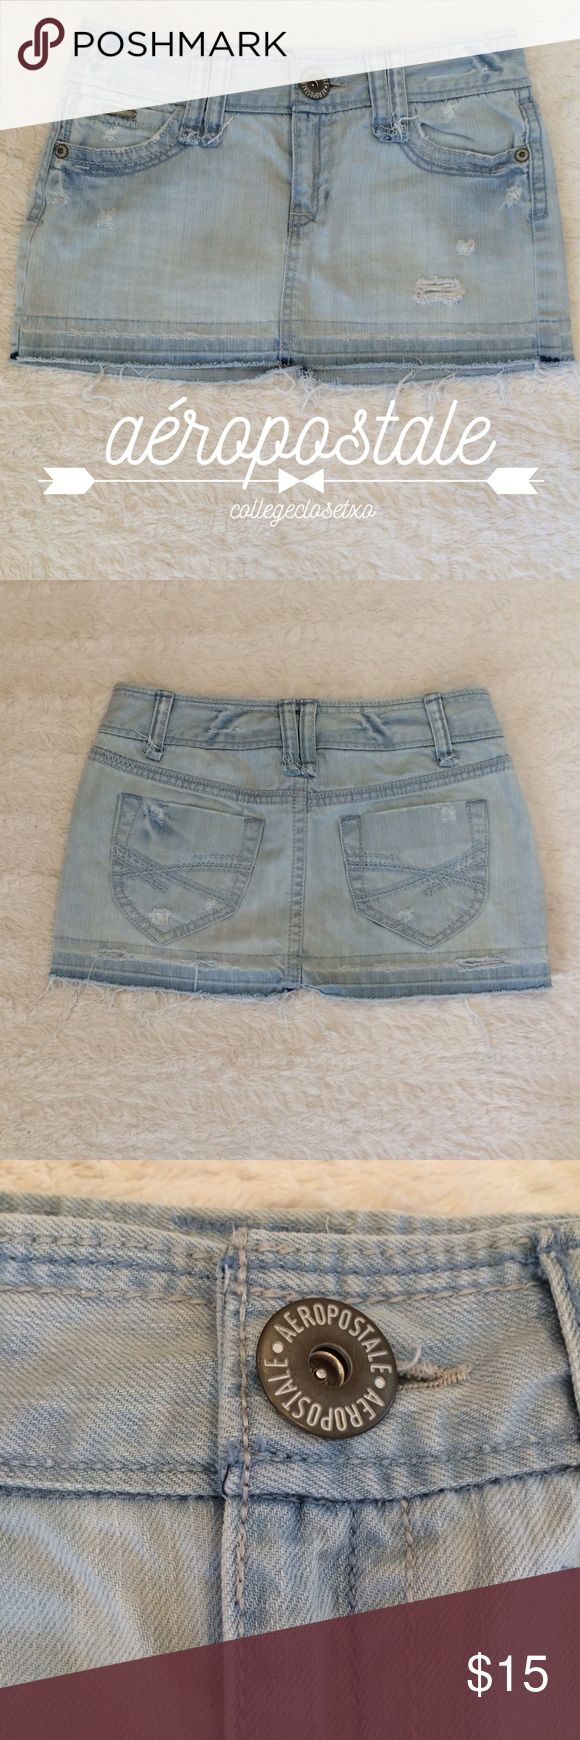 Aéropostale Distressed Jean Skirt Great condition! Size 3/4. Comes from a smoke free/pet free home! Aeropostale Skirts Mini